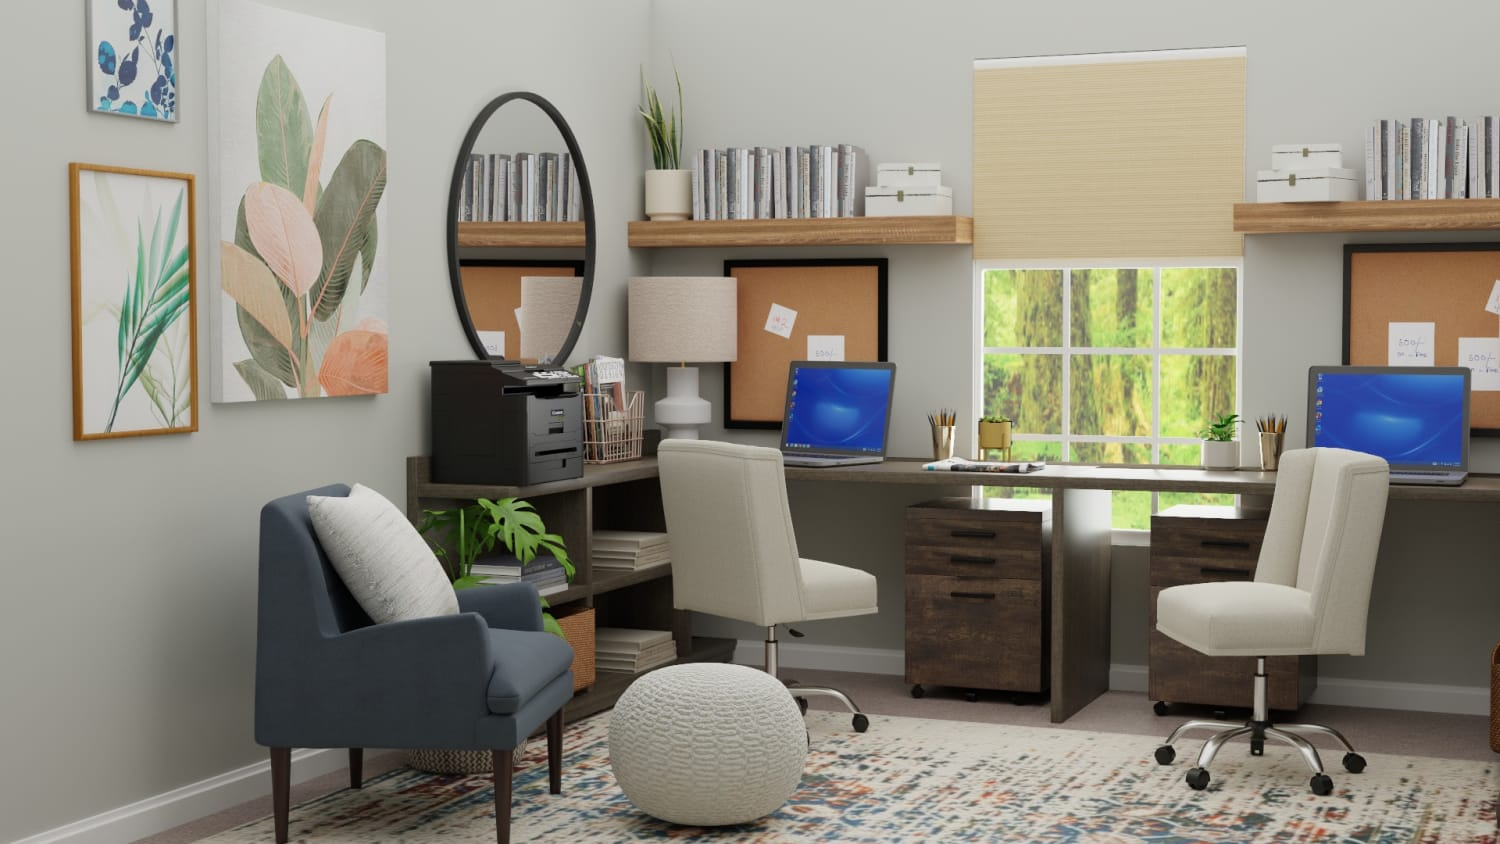 Multi Person Work Space: Urban Eclectic Home Office Design By Spacejoy